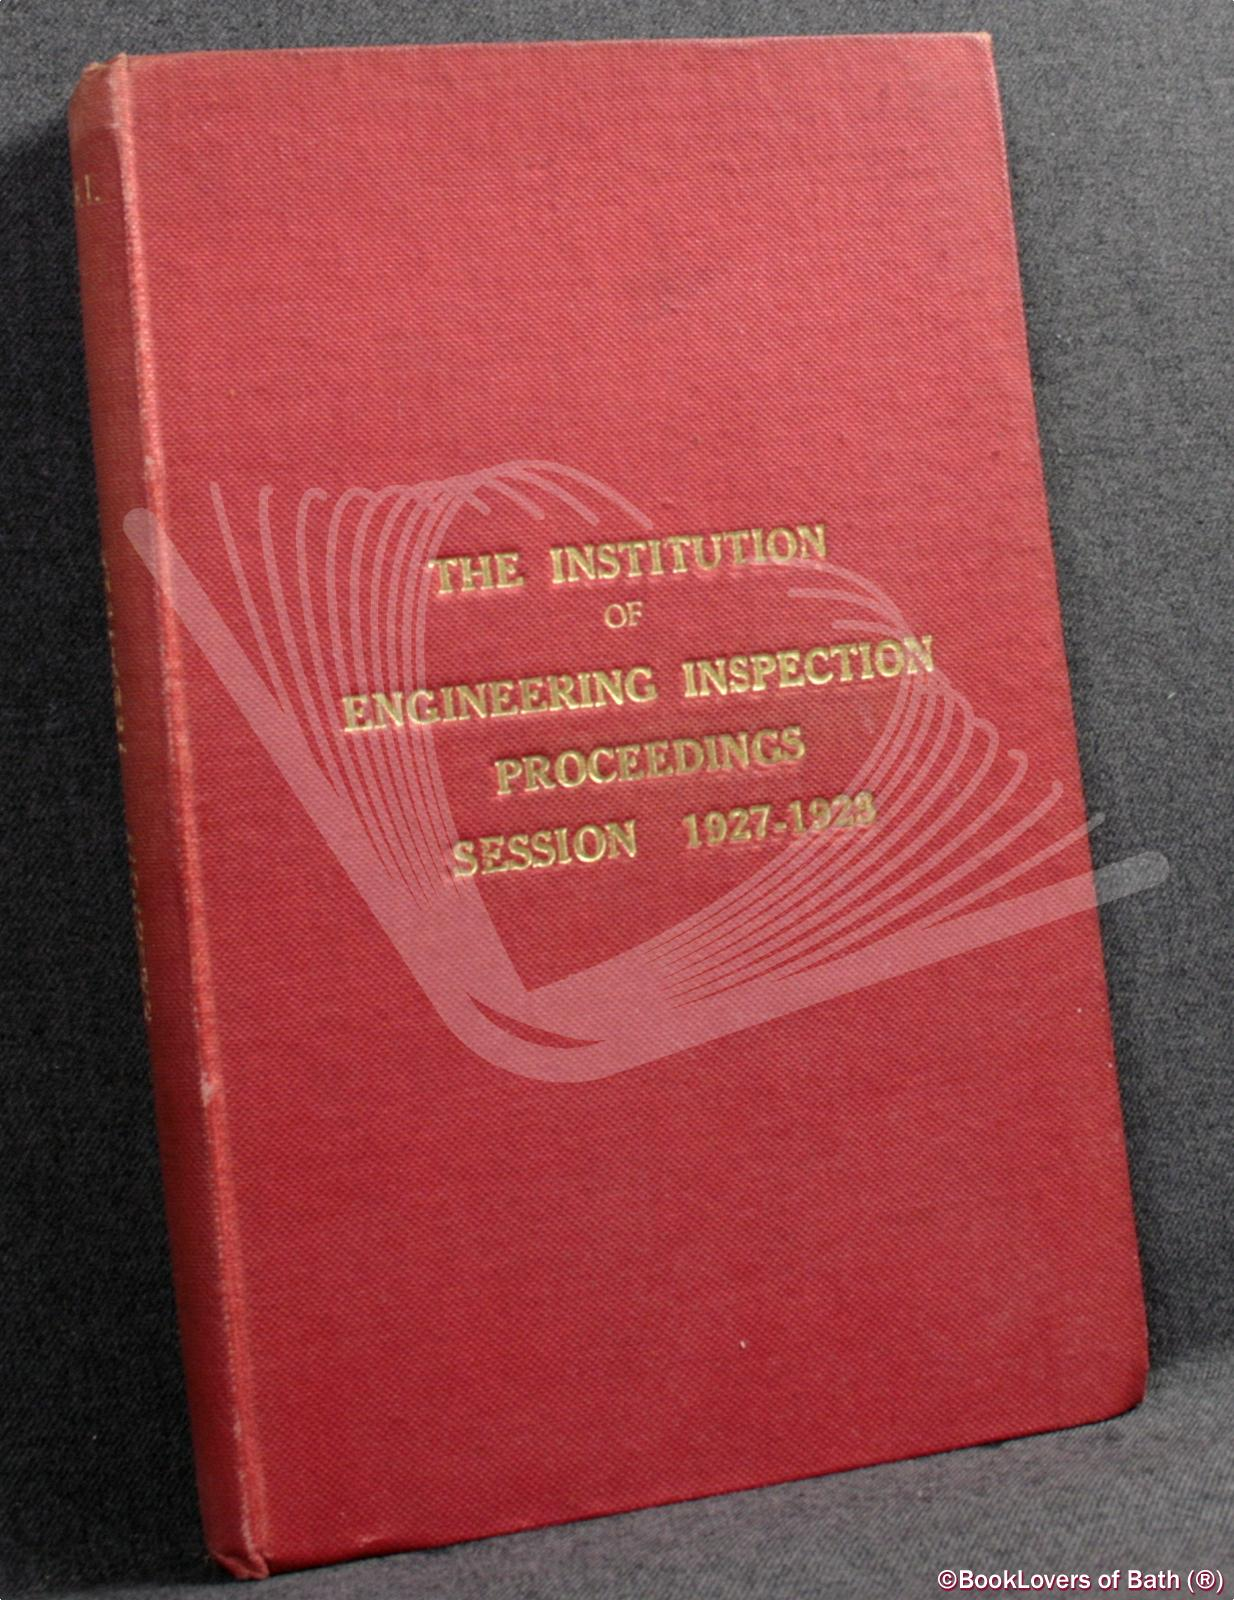 The Institute Of Engineering Inspection Proceedings Session 1927-1928 - Anon.